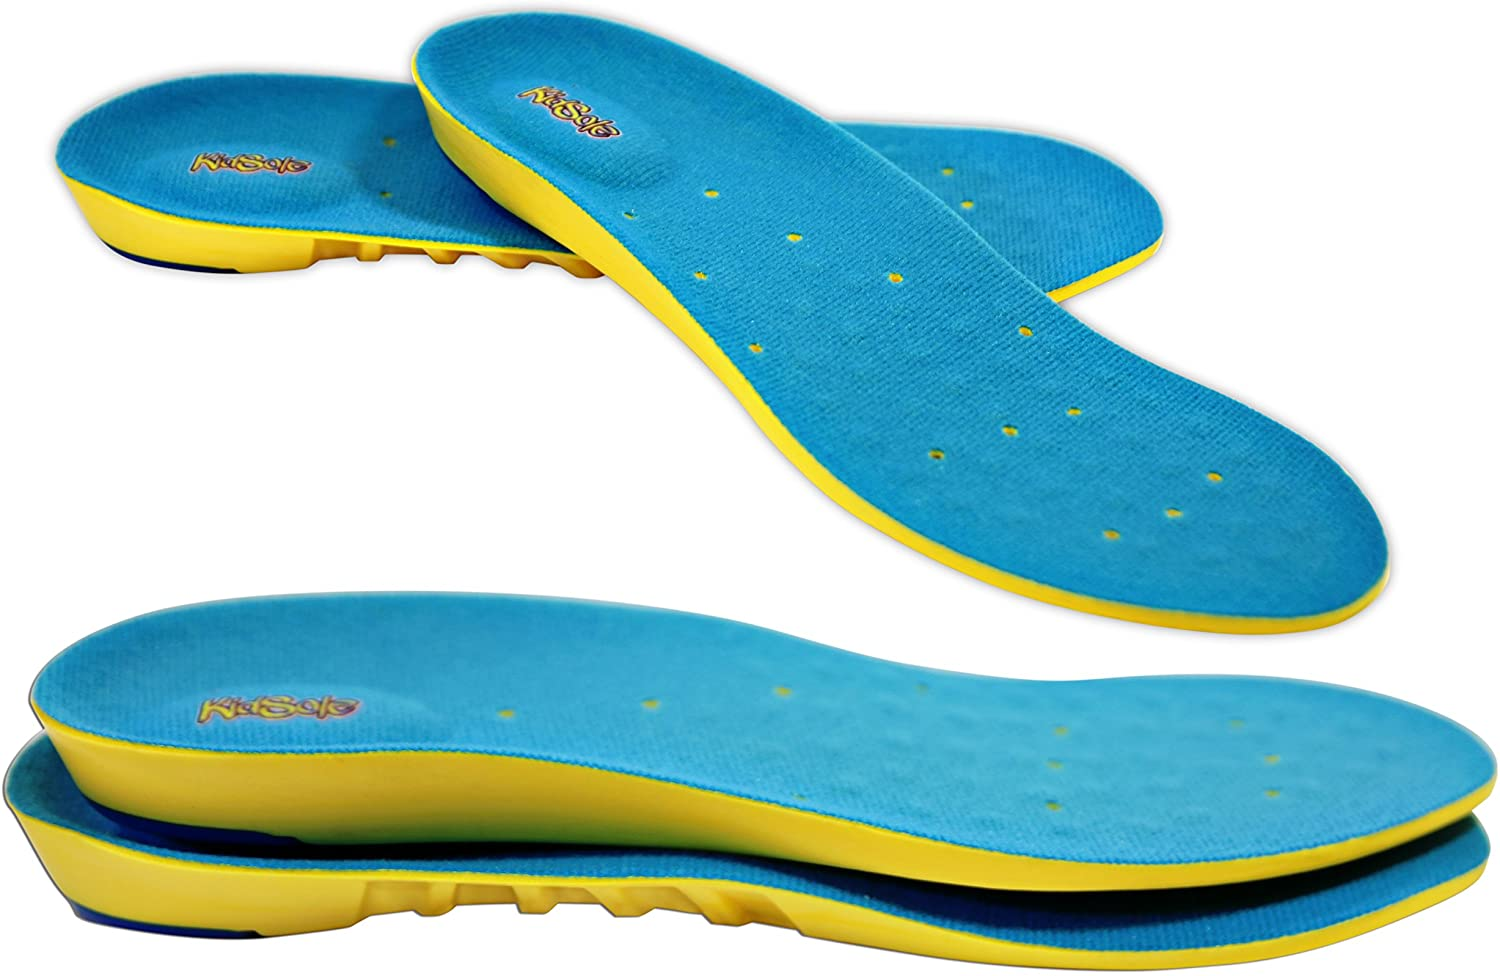 Children's Athletic Memory Foam Insoles for Arch Support and Comfort for Active Children ((26 cm) Kids Size 6.5-8.5)